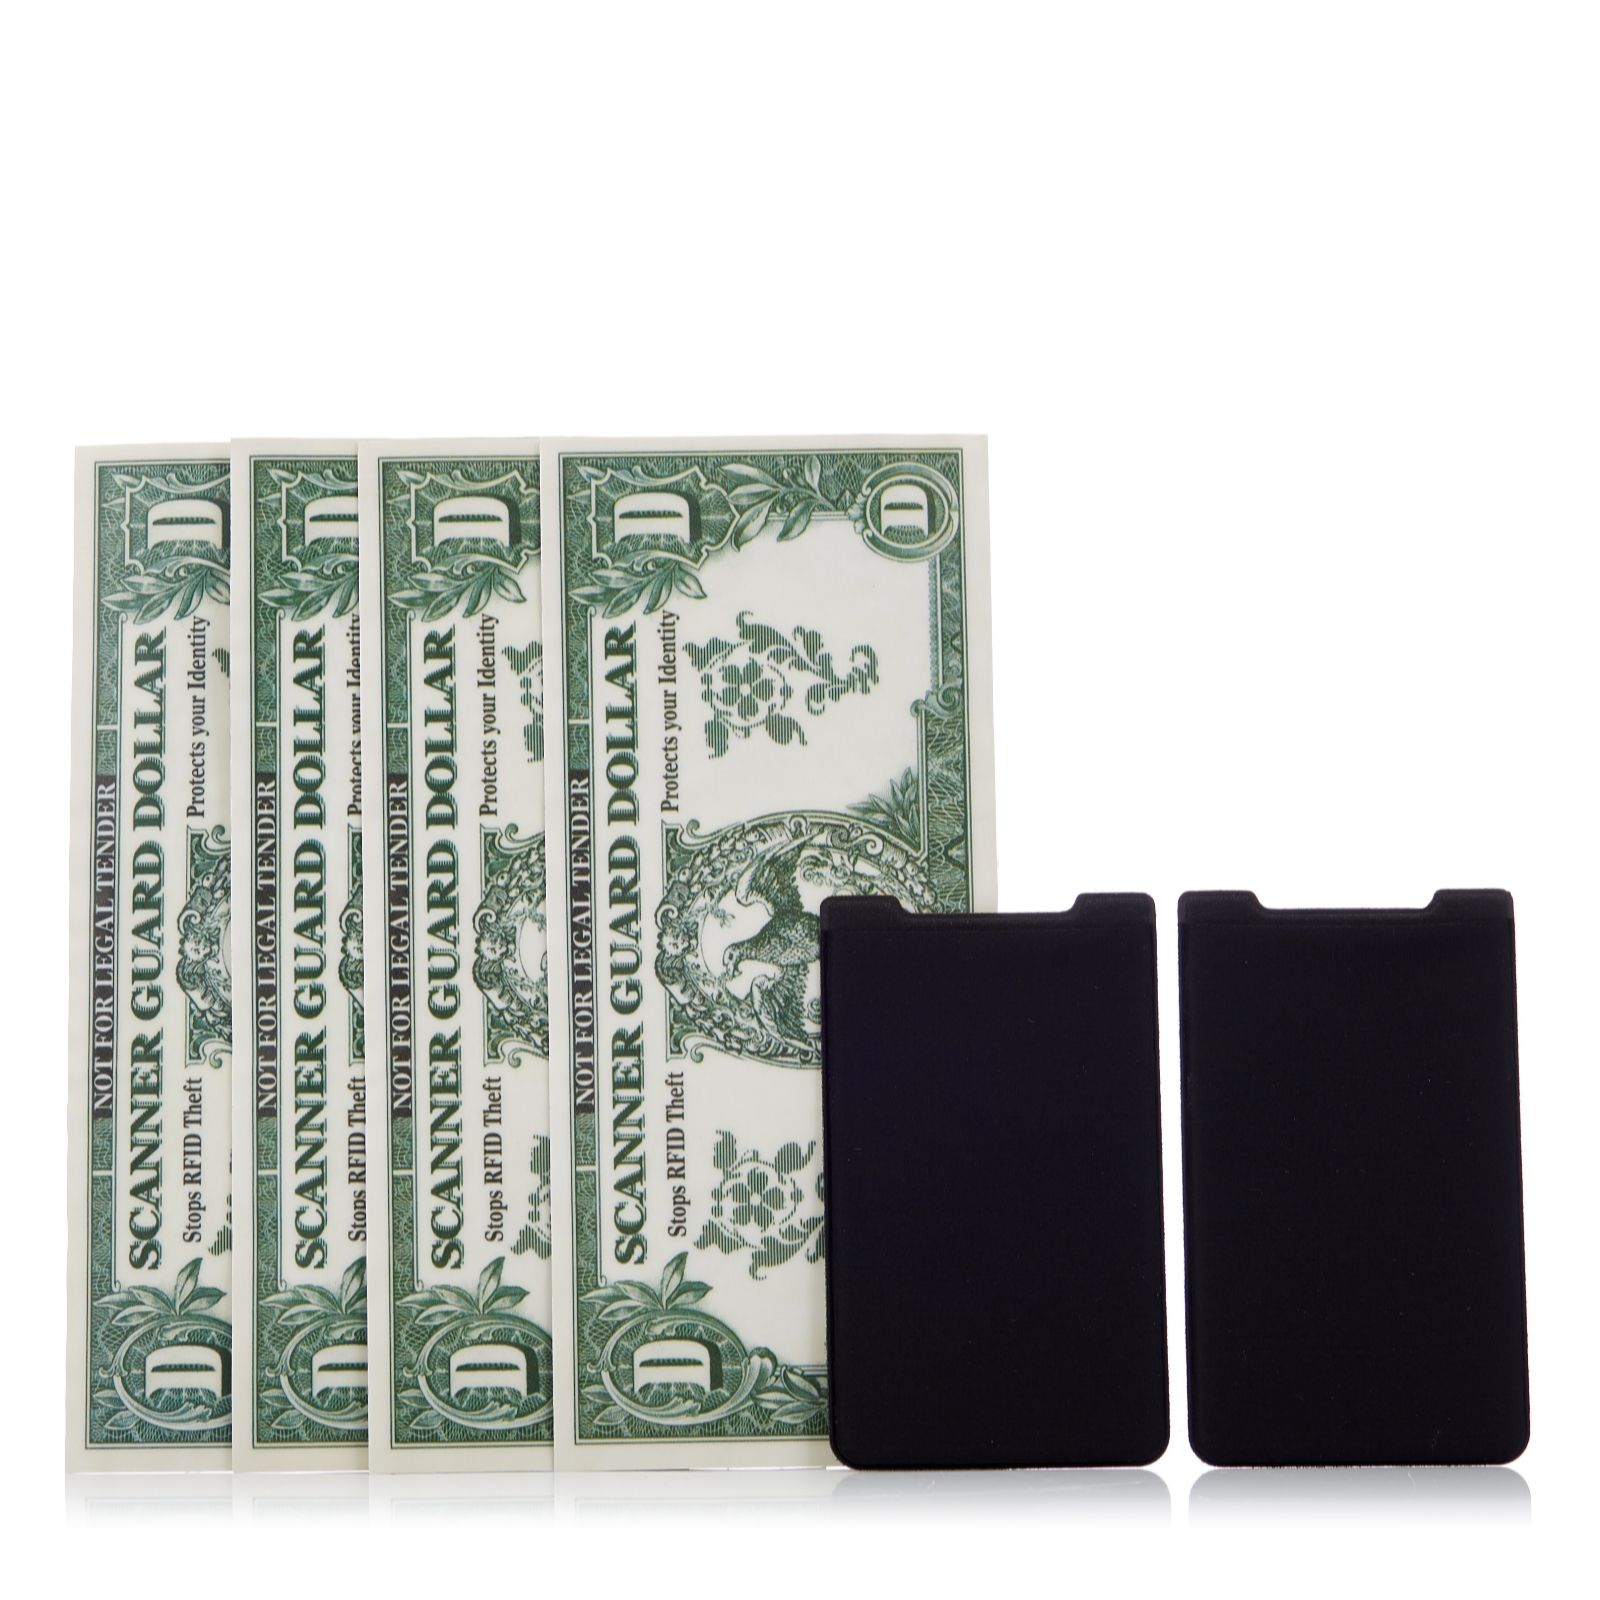 2bed98a78550 Scanner Guard 2 RFID Wallet Protectors& 2 RFID Mobile Phone Card Holders -  QVC UK